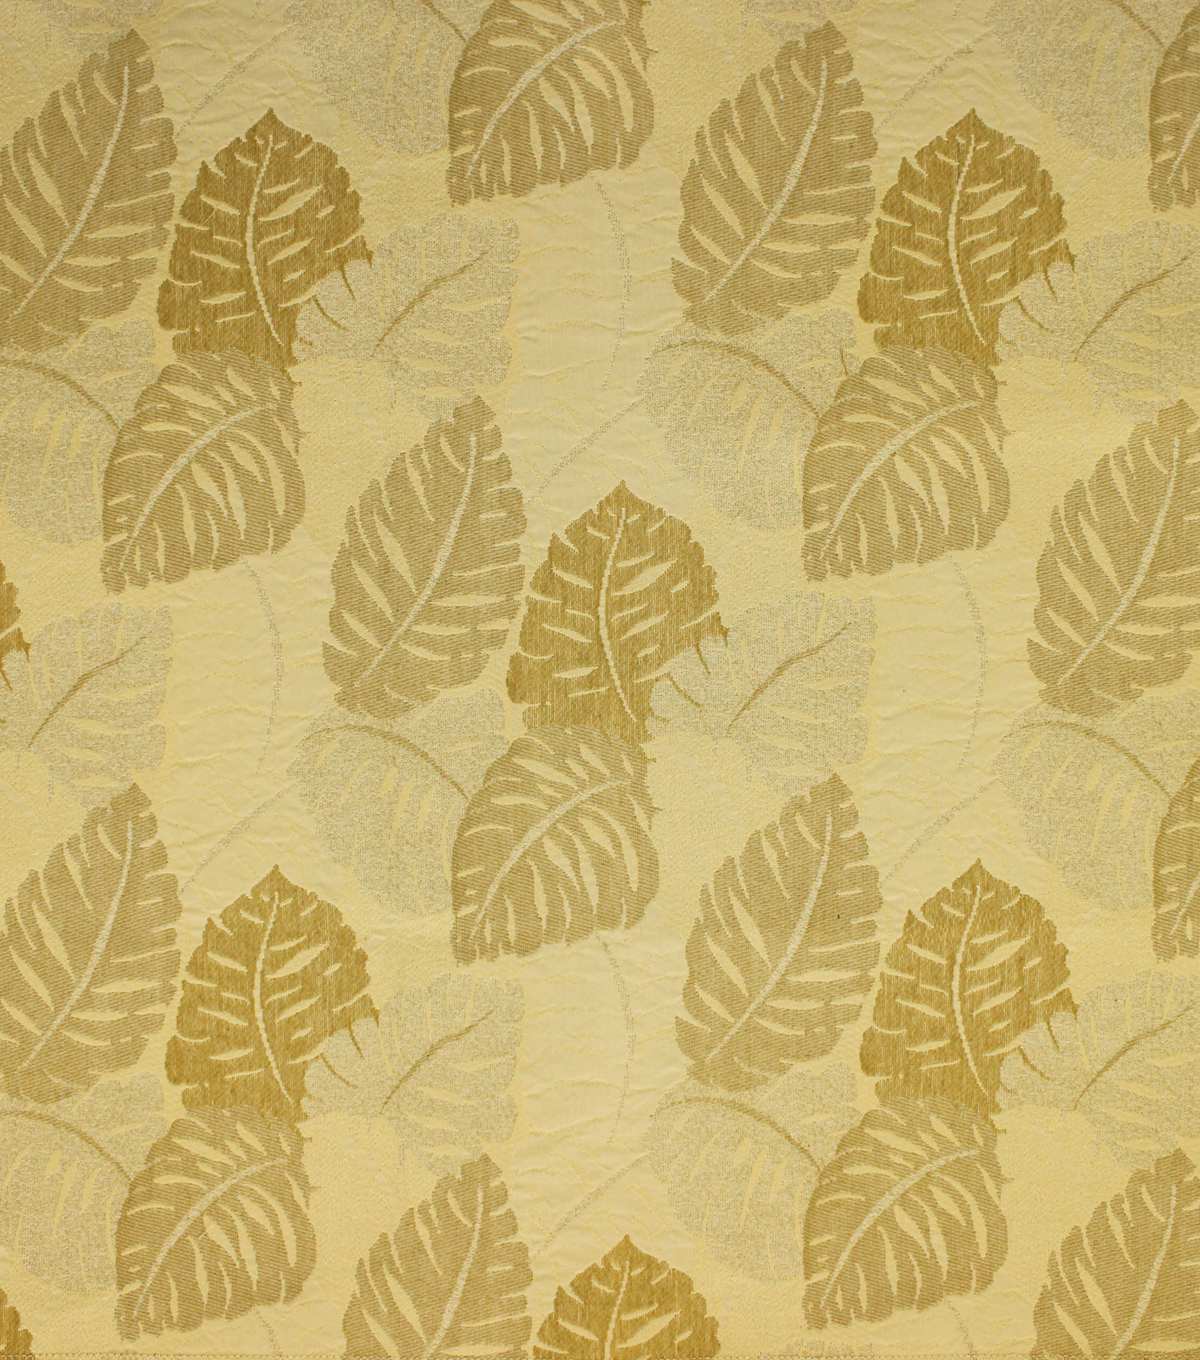 Home Decor 8\u0022x8\u0022 Fabric Swatch-Upholstery Fabric Barrow M8526-5934 Coconut